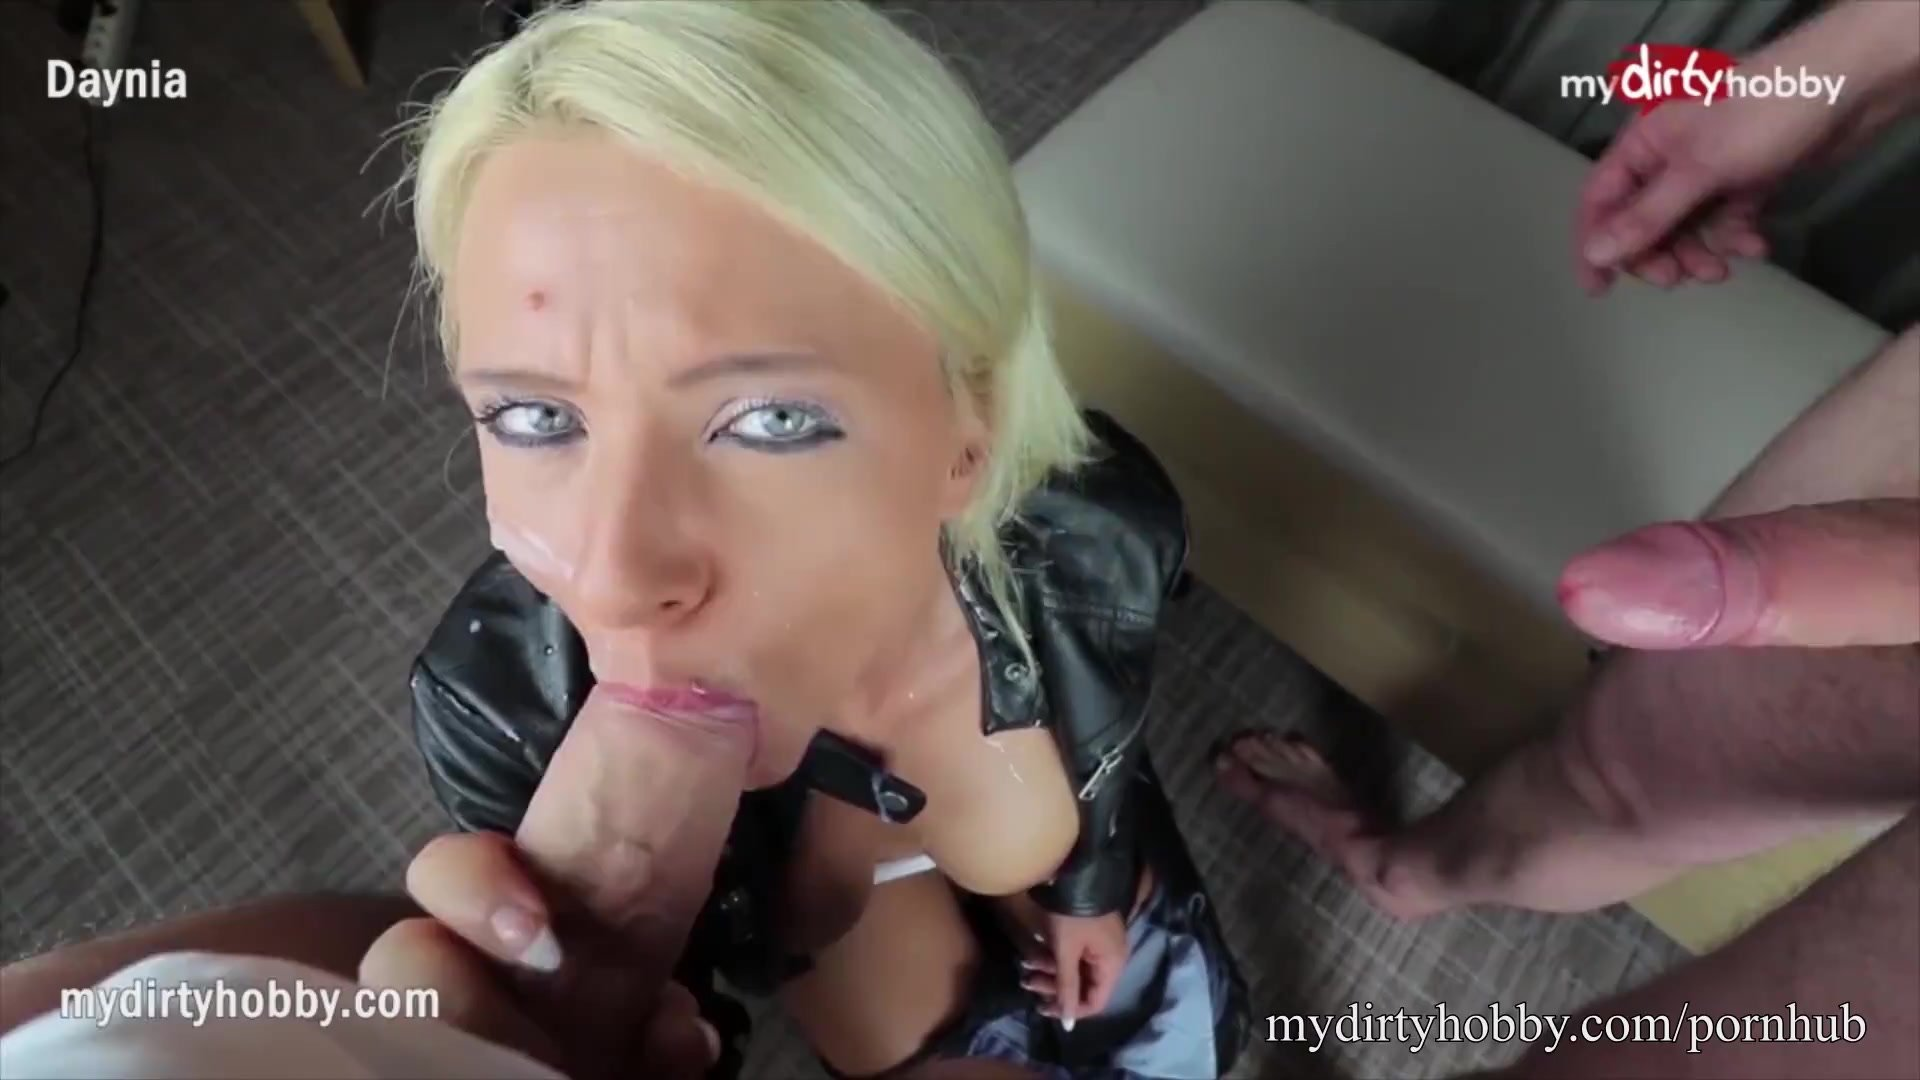 MyDirtyHobby - Hot busty blonde swallows two huge loads of cum after an anal FMM threesome